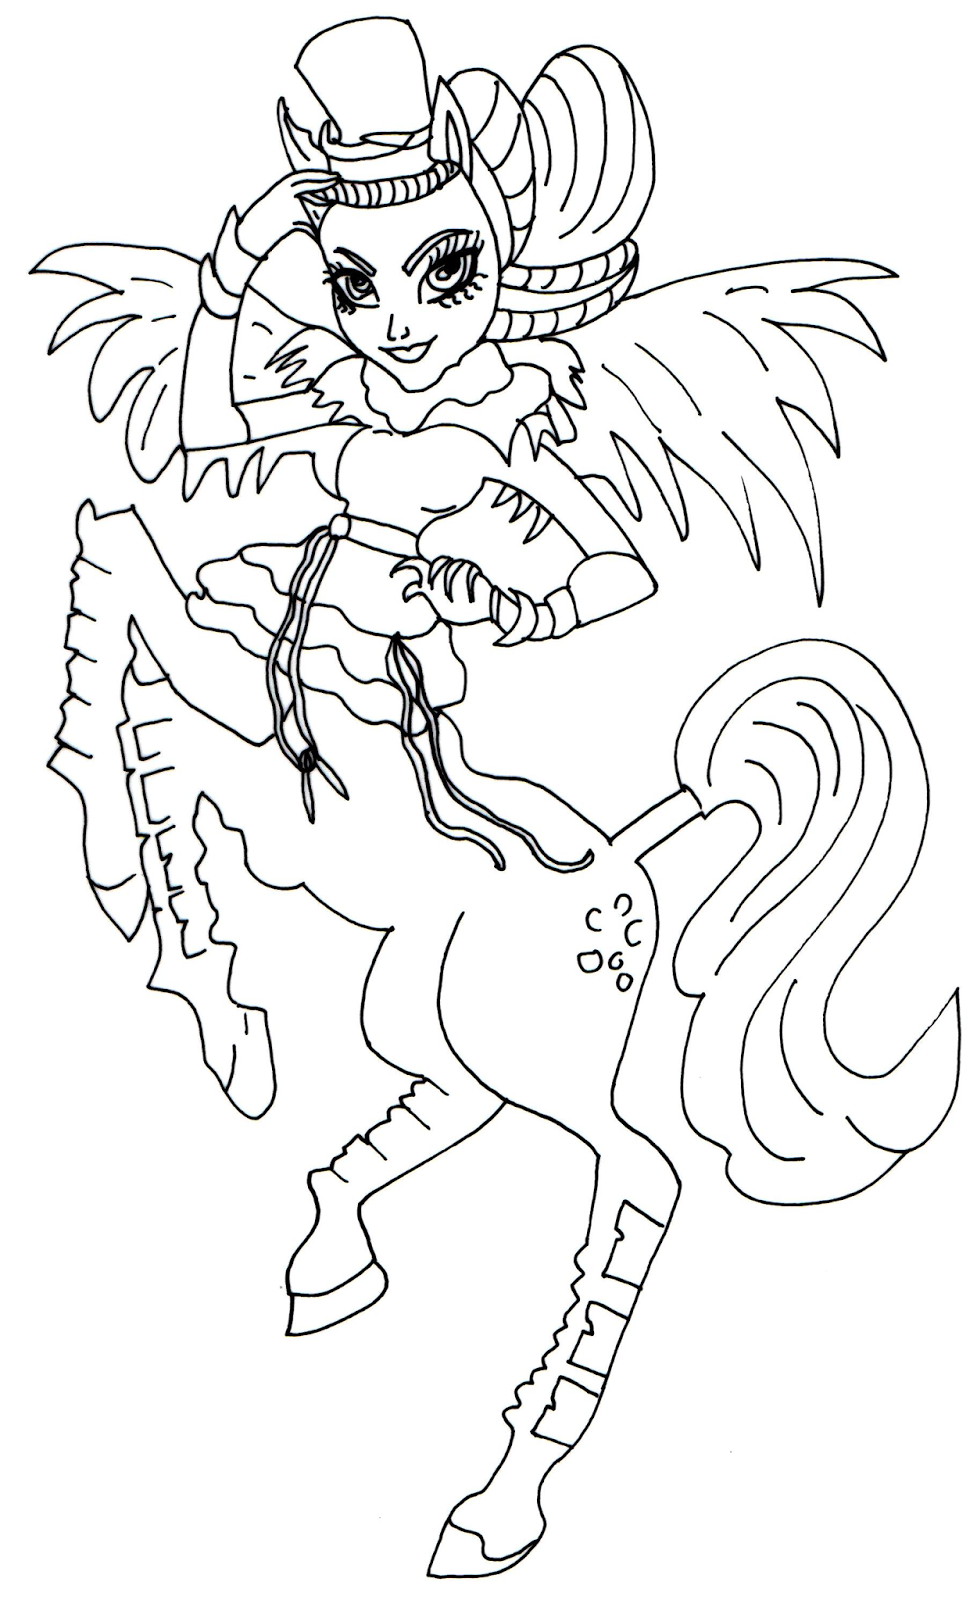 Free Printable Monster High Coloring Pages: Avea Trotter